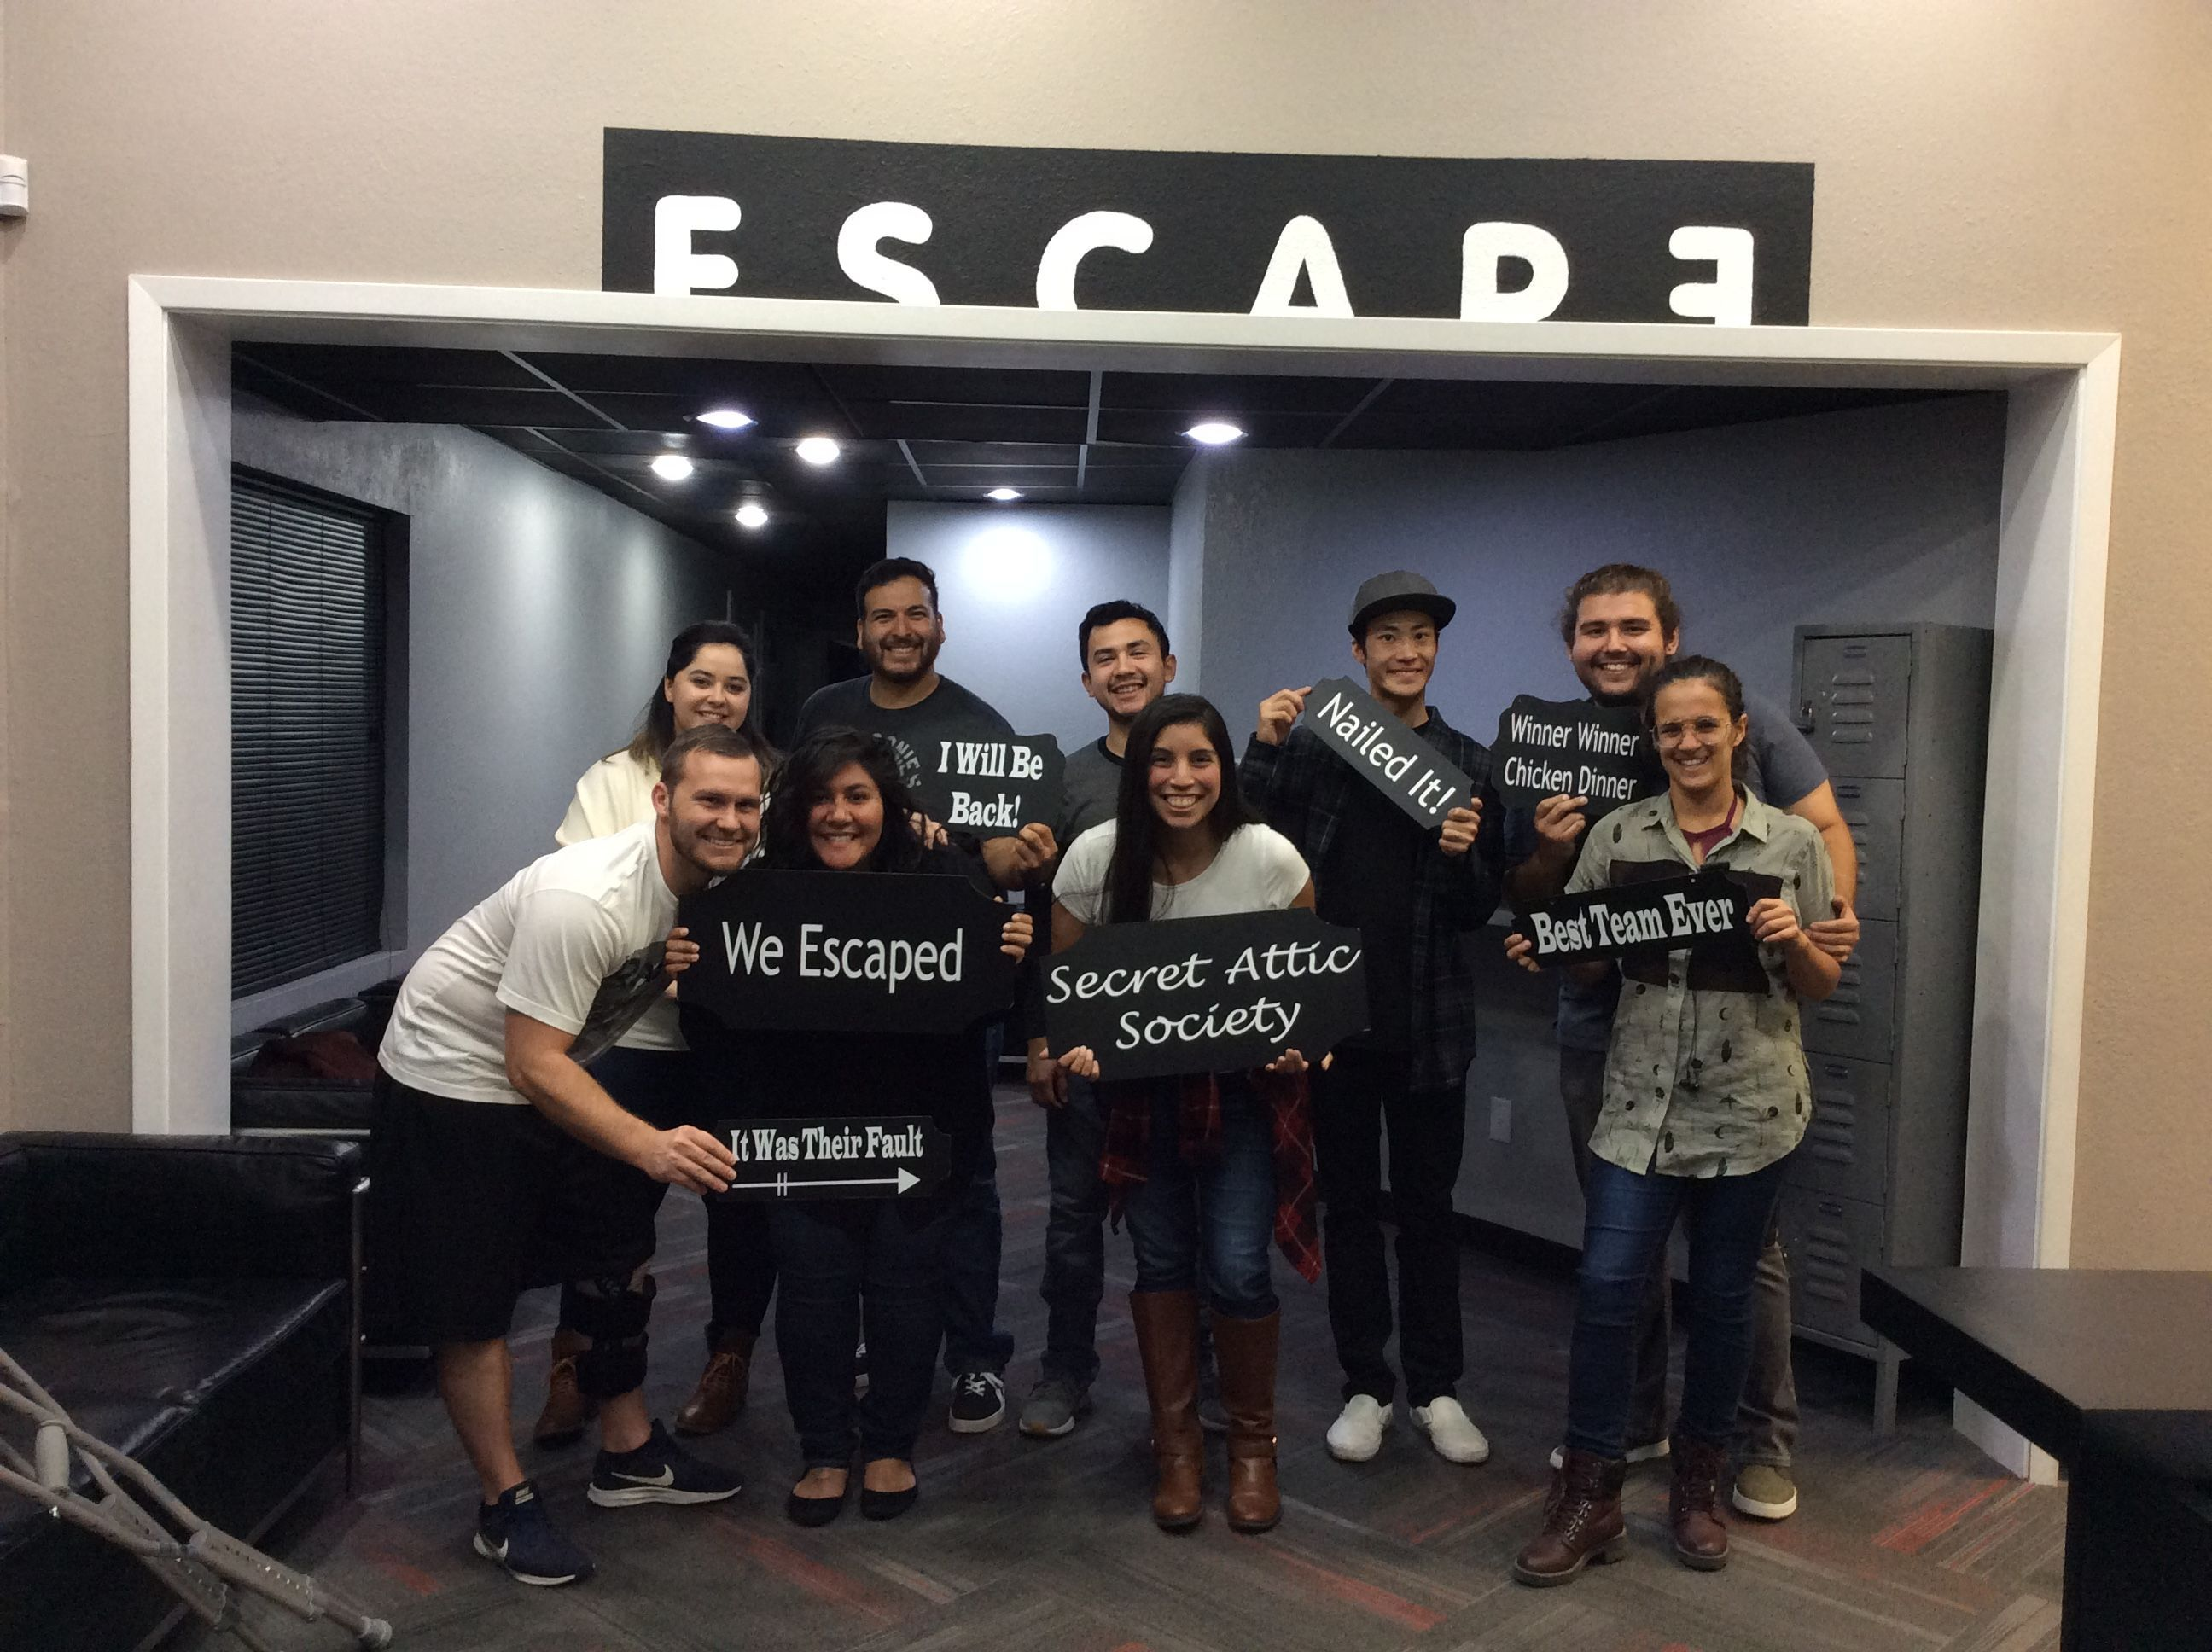 This Group Earned Their Membership Into The Secret Attic Society Today With A Finishing Time Of 53 Minutes Escape Room The Secret Society